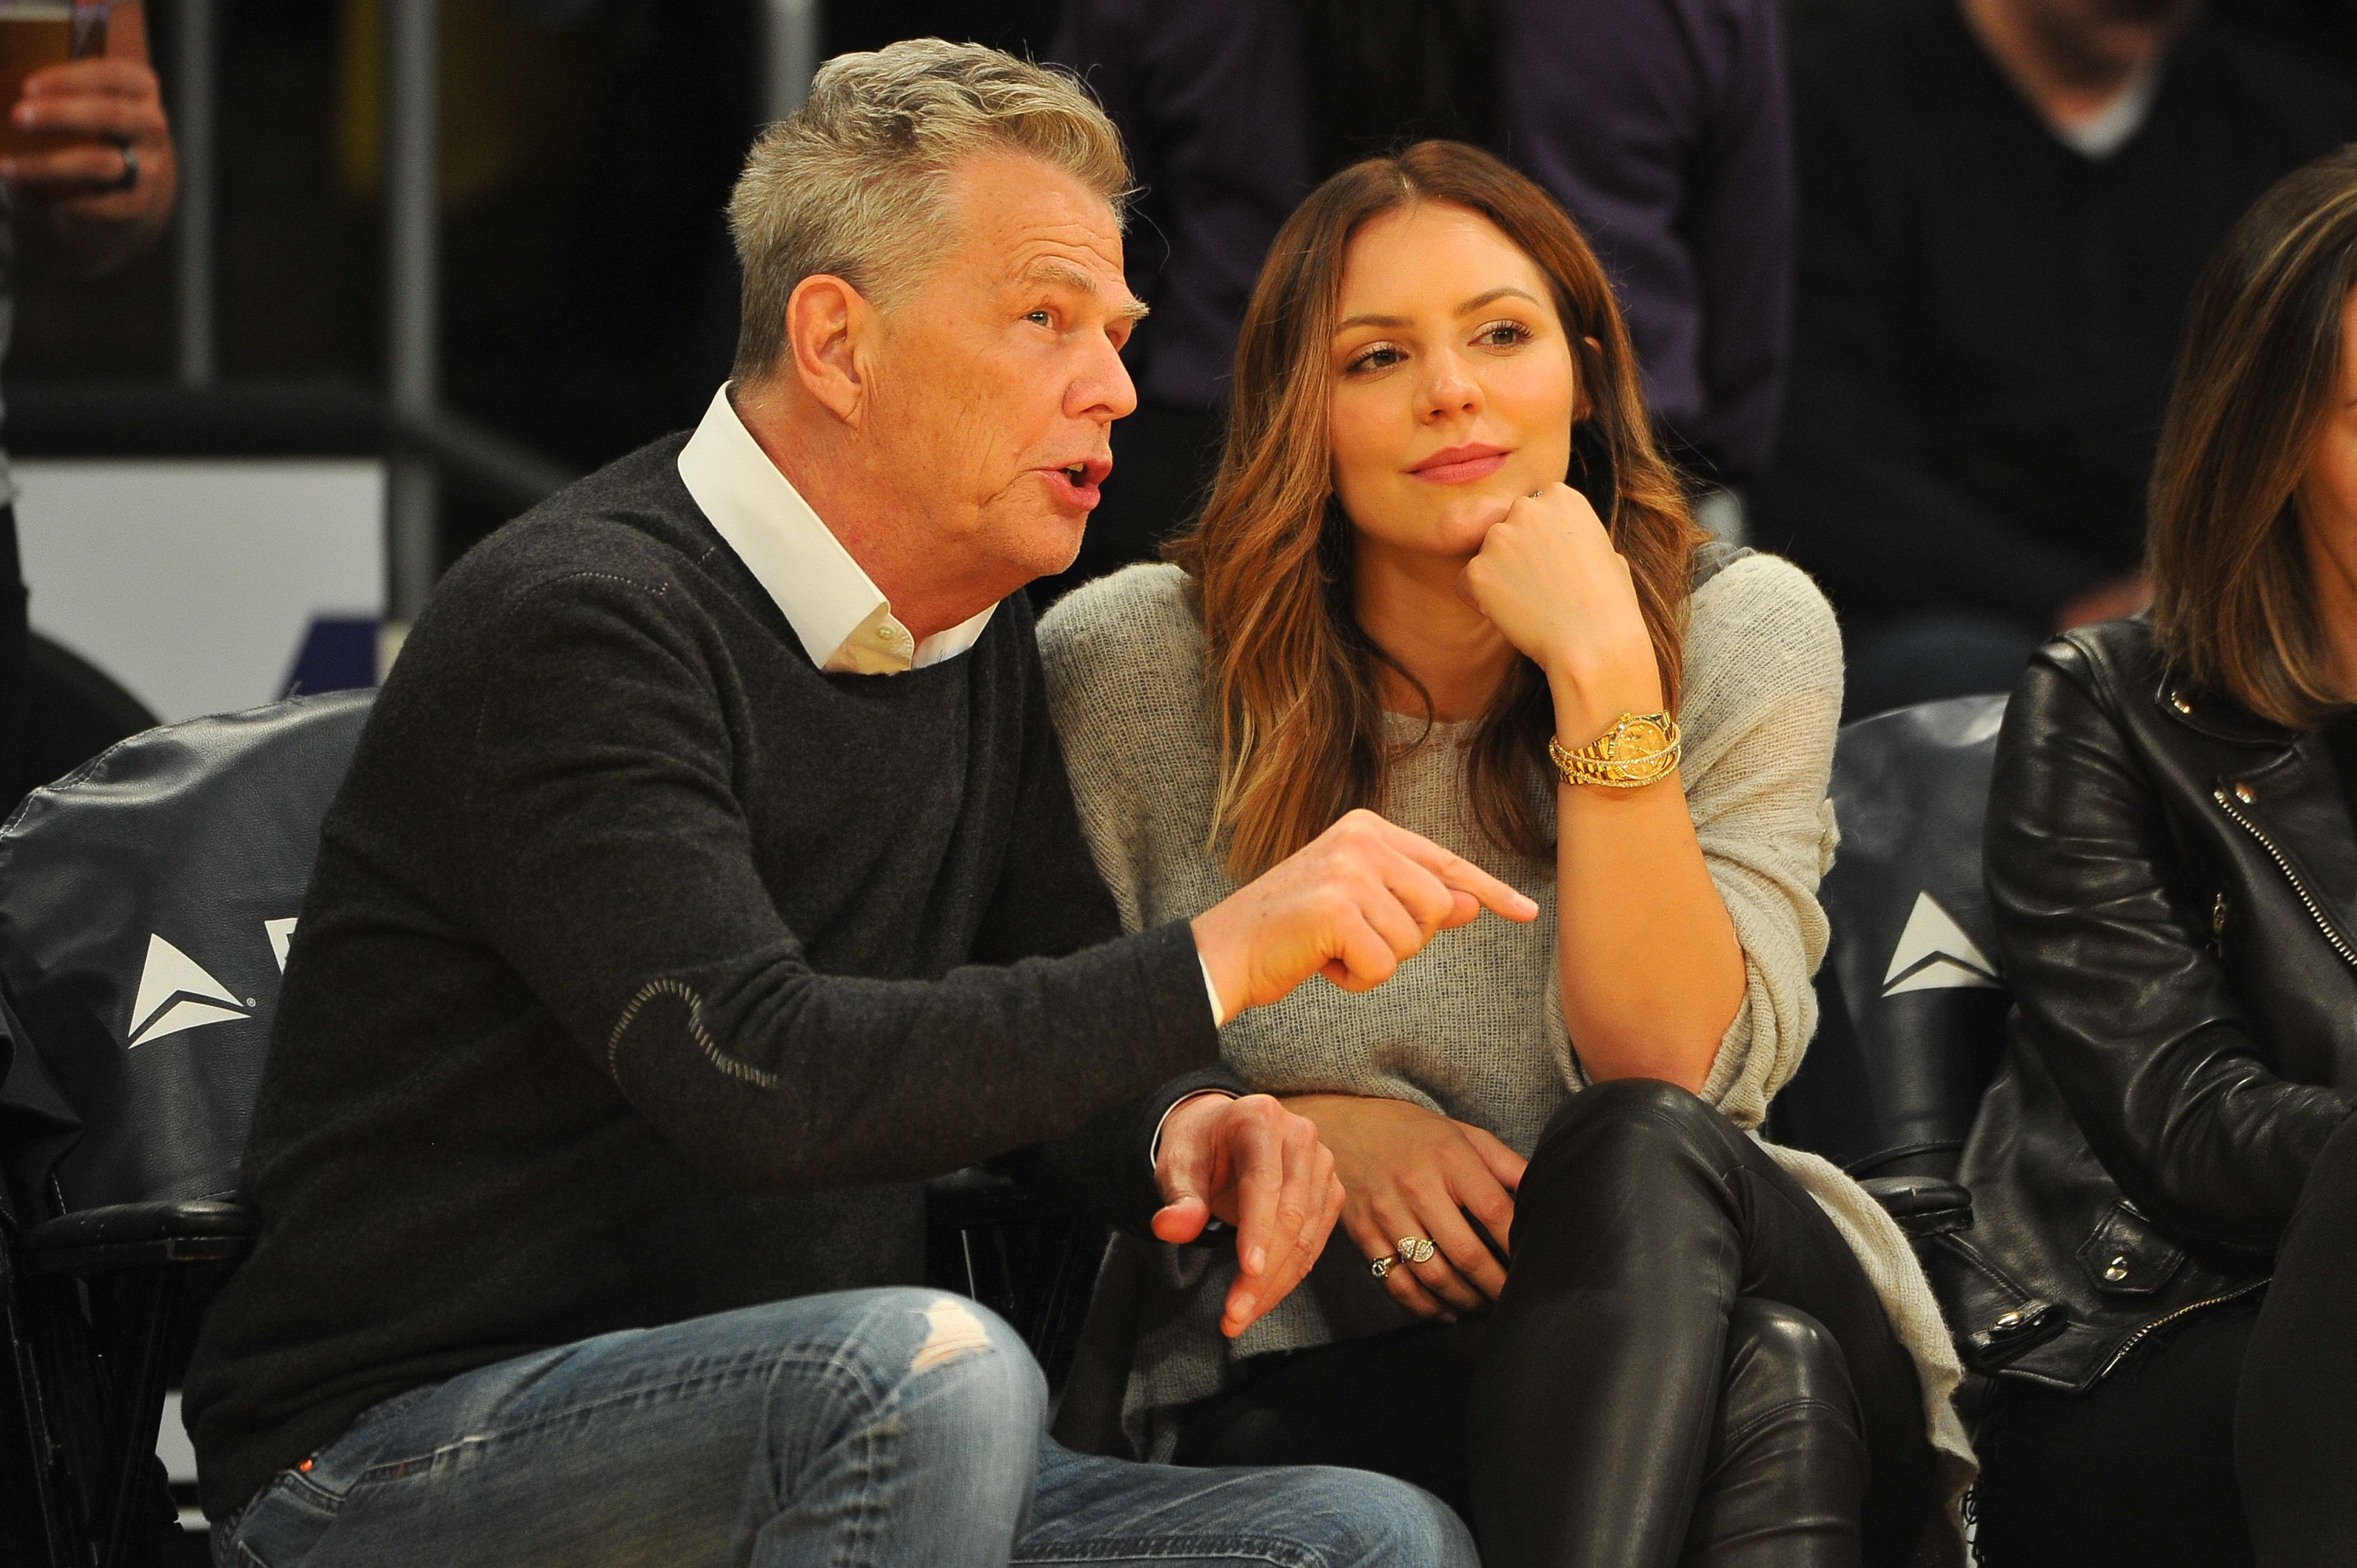 Katharine Mcphee And David Foster Just Got Engaged Reports Say